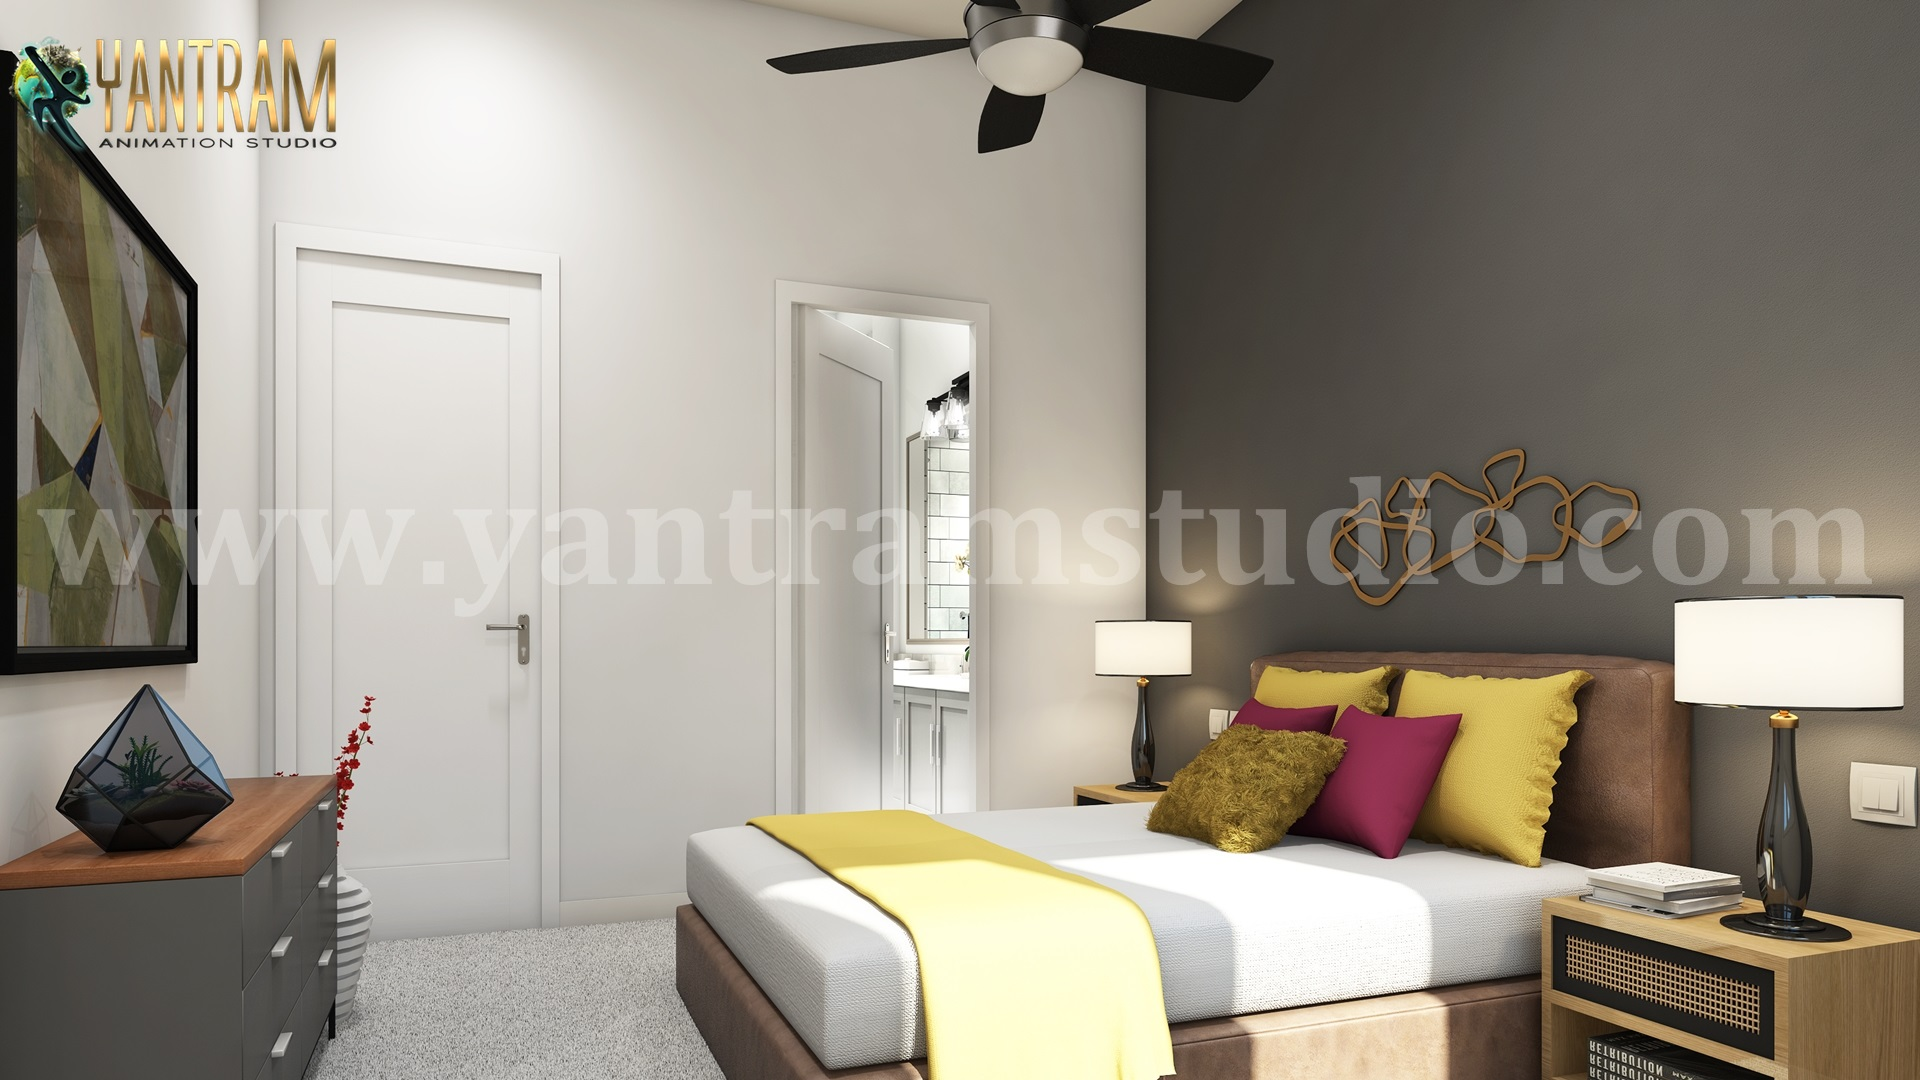 Contemporary Master Bedroom 3d interior rendering services by 3d architectural visualization.jpg  by yantramstudio